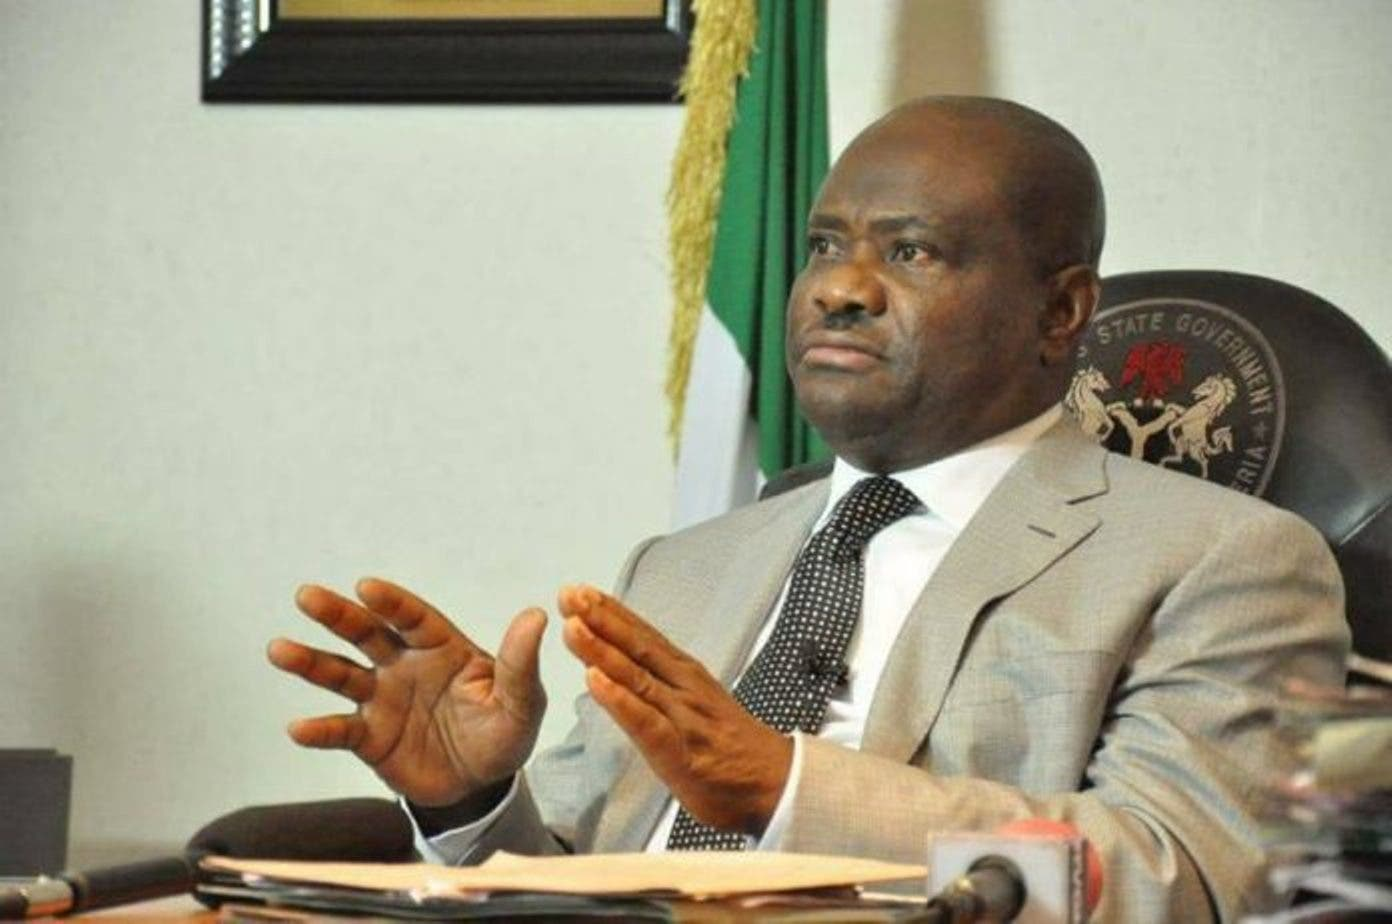 Governor Wike Imposes 24 Hours Curfew On Some Parts Of Rivers State